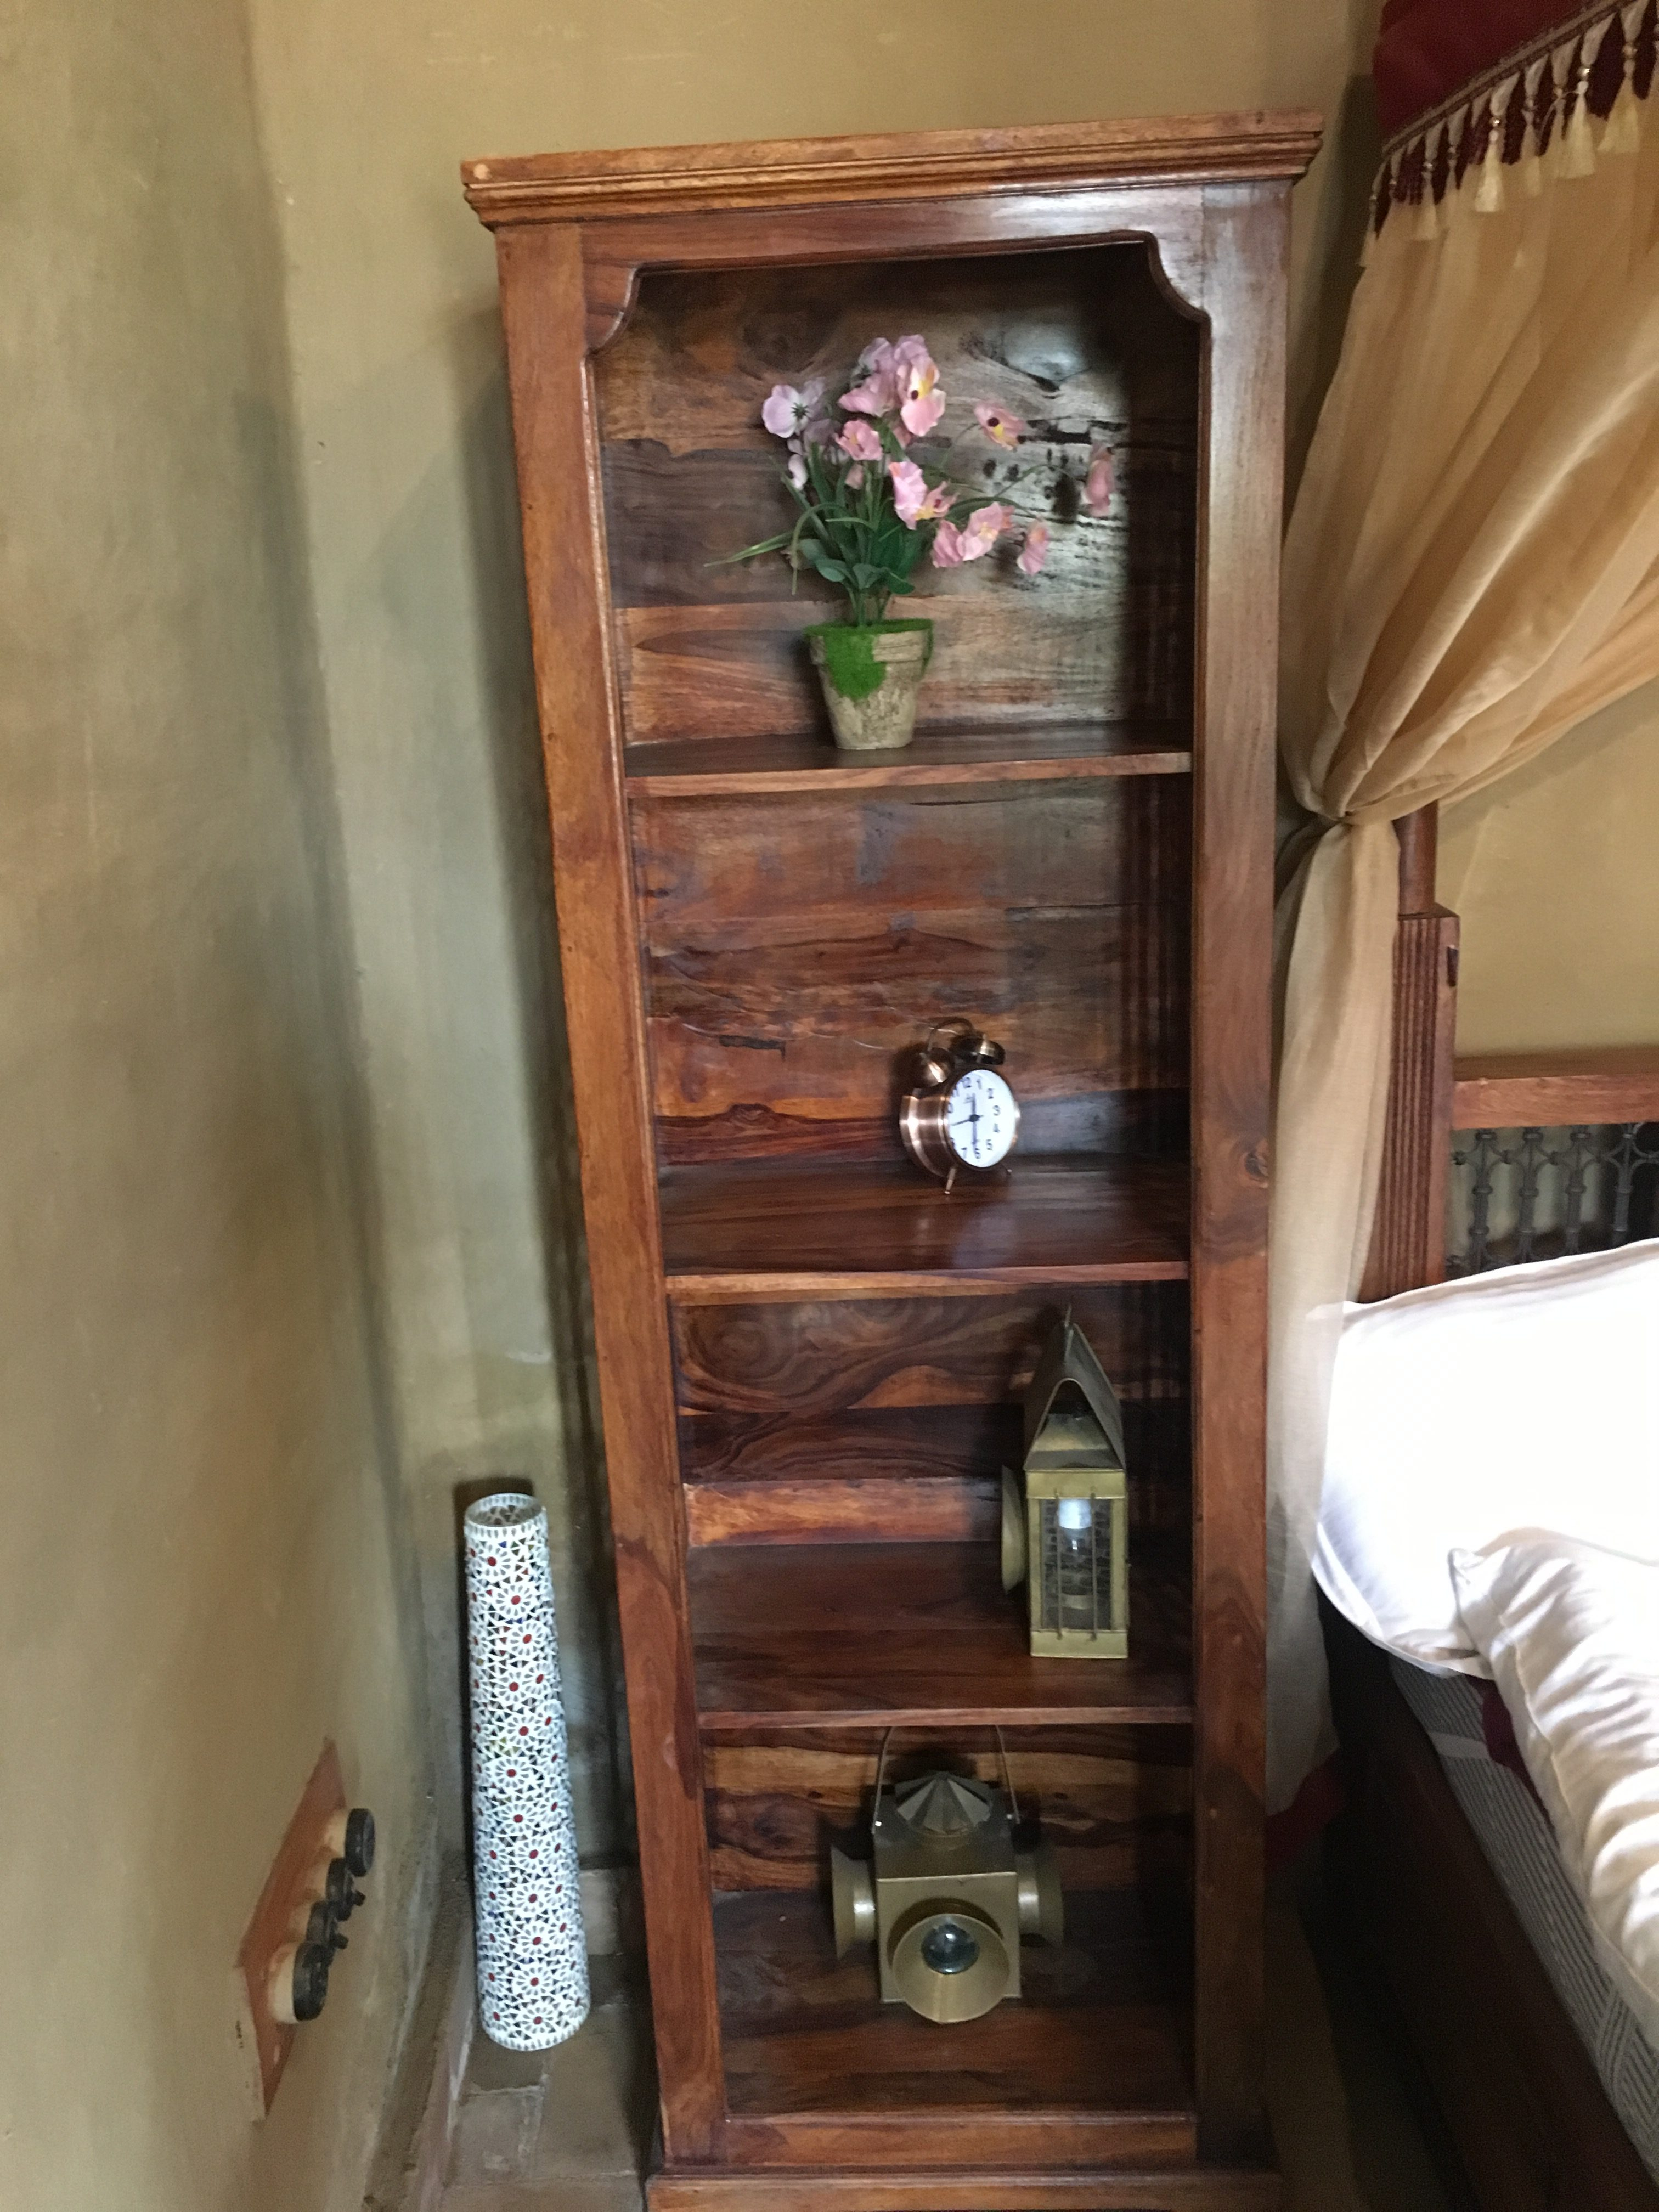 Travel Story: Stay cation at Themis Mud HouseLamprobites